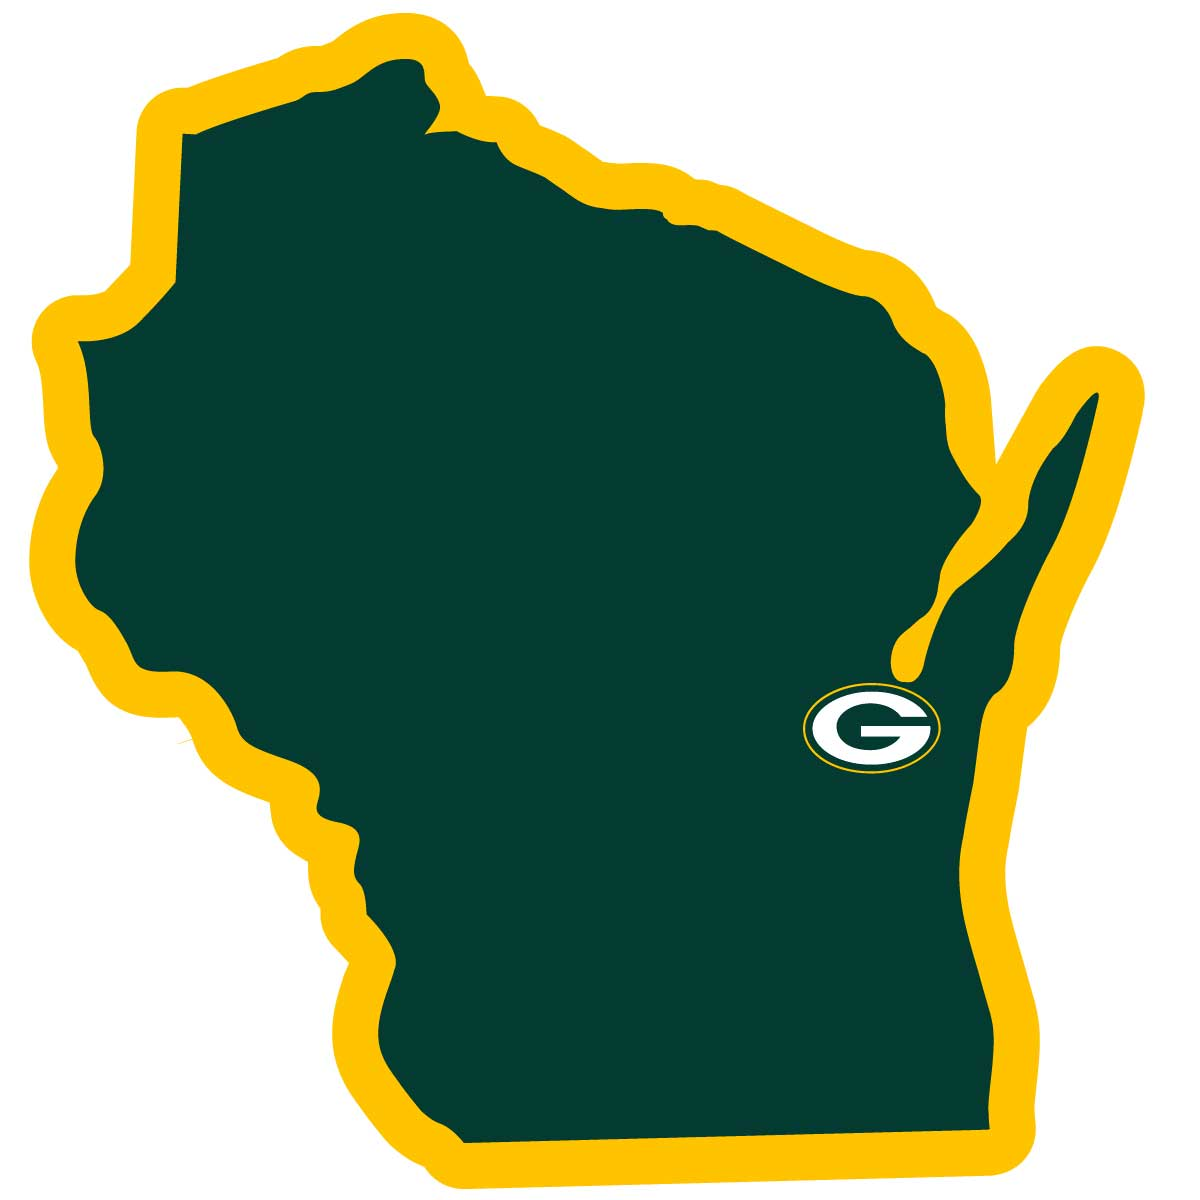 Green Bay Packers Home State Decal - It's a home state decal with a sporty twist! This Green Bay Packers decal feature the team logo over a silhouette of the state in team colors and a heart marking the home of the team. The decal is approximately 5 inches on repositionable vinyl.